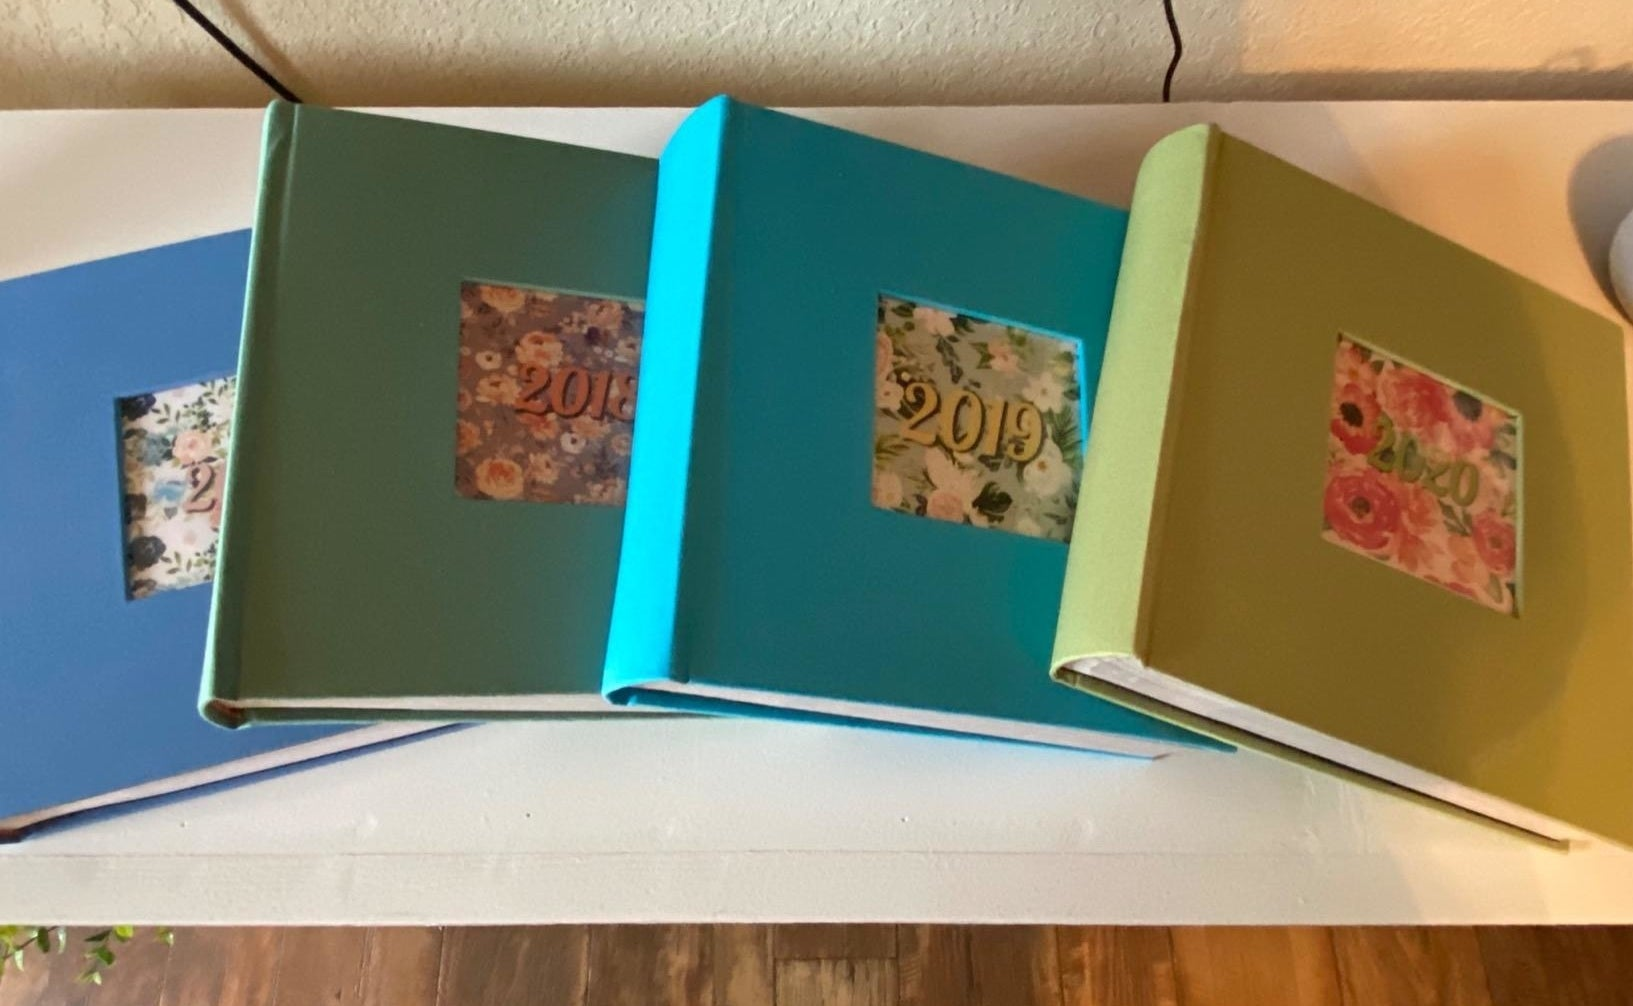 reviewer's four photo albums in different colors, marked with the year